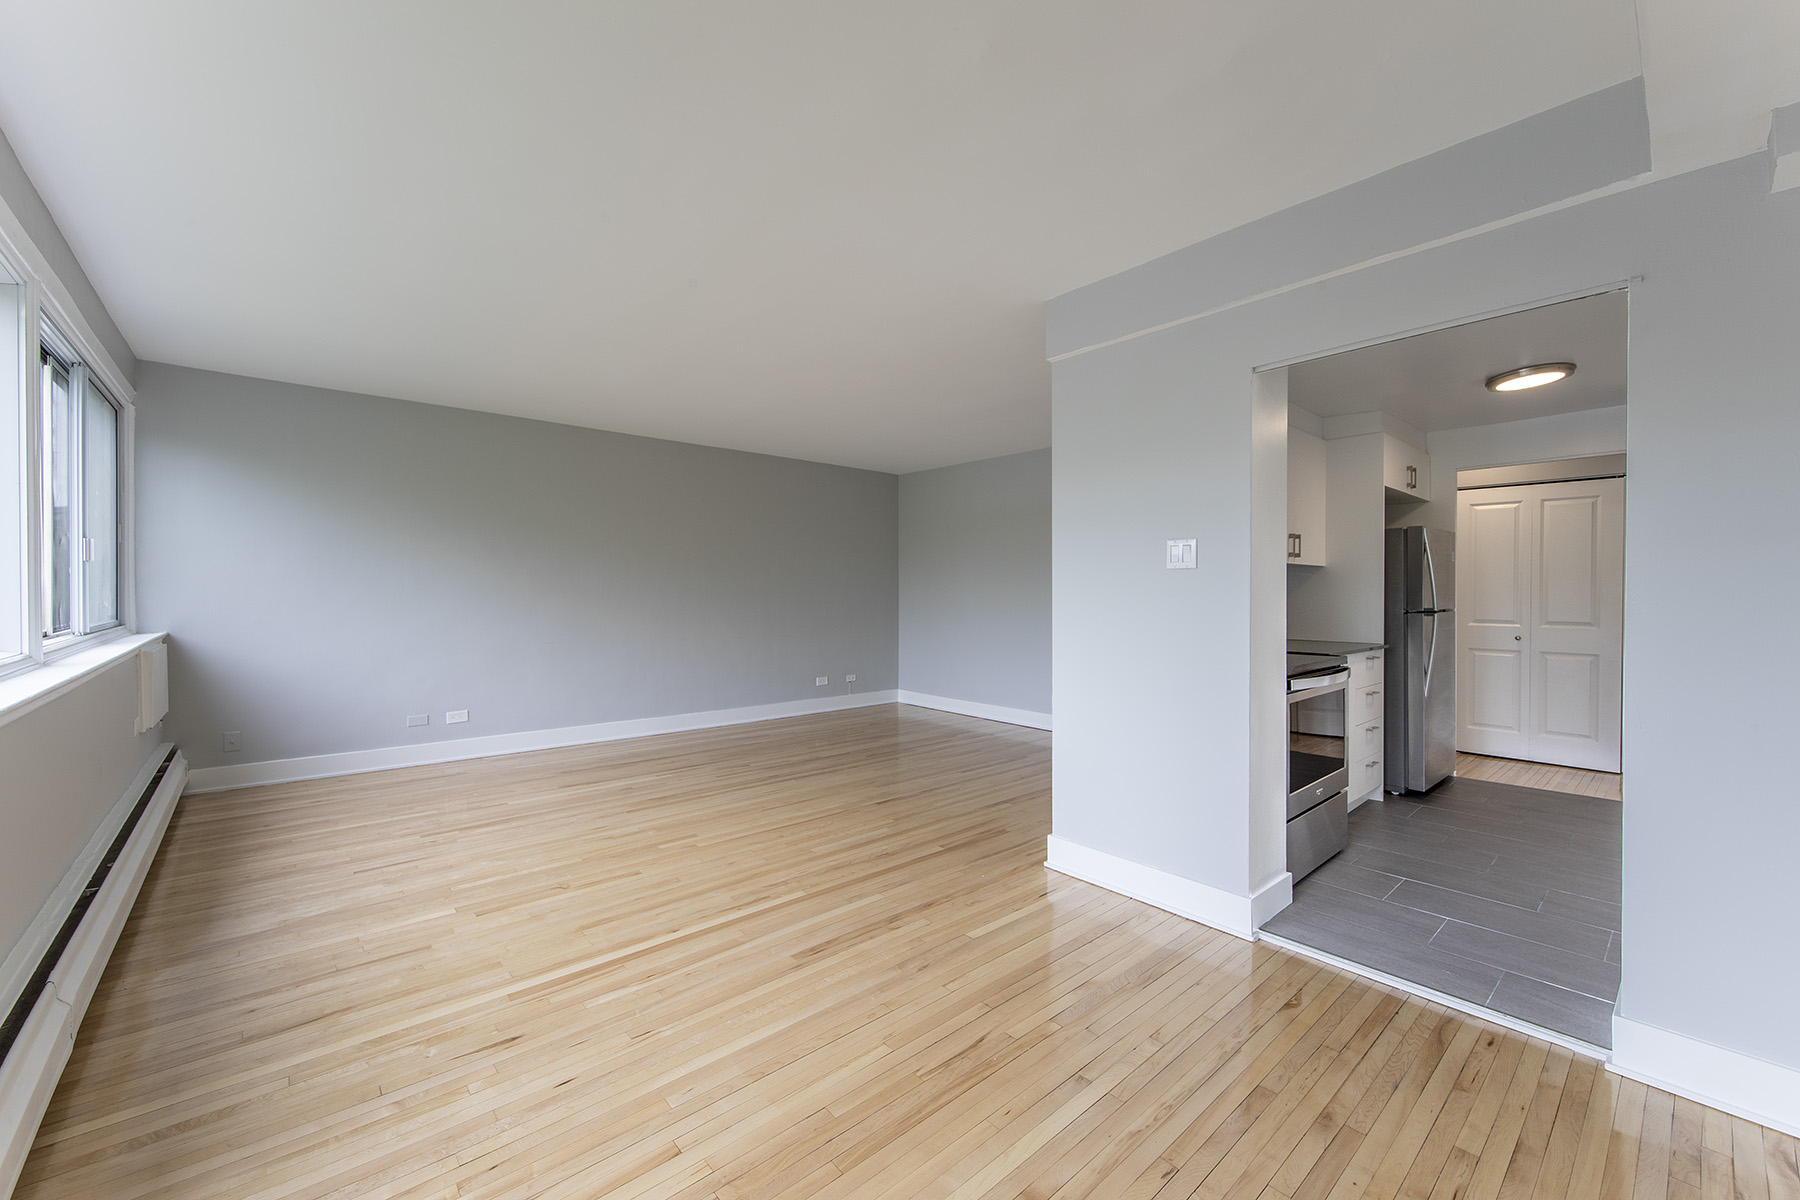 3 bedroom Apartments for rent in Cote-St-Luc at 5765 Cote St-Luc - Photo 02 - RentQuebecApartments – L401534